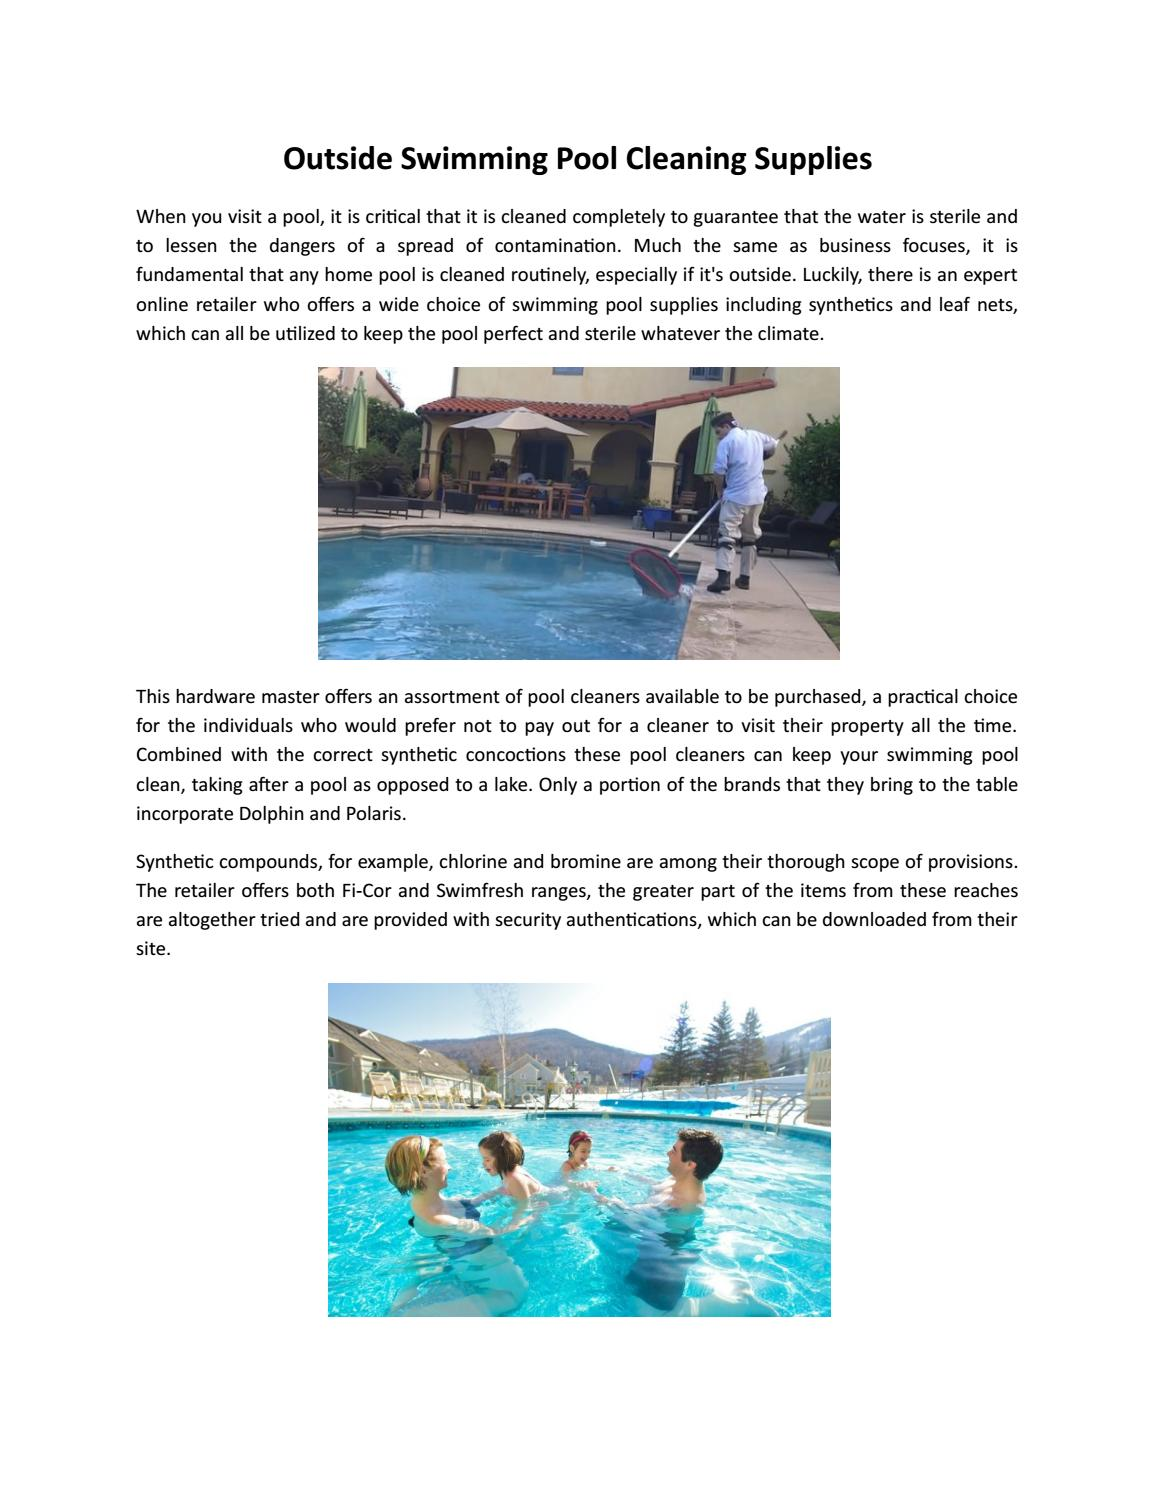 Outside swimming pool cleaning supplies by Total Pool Safety ...